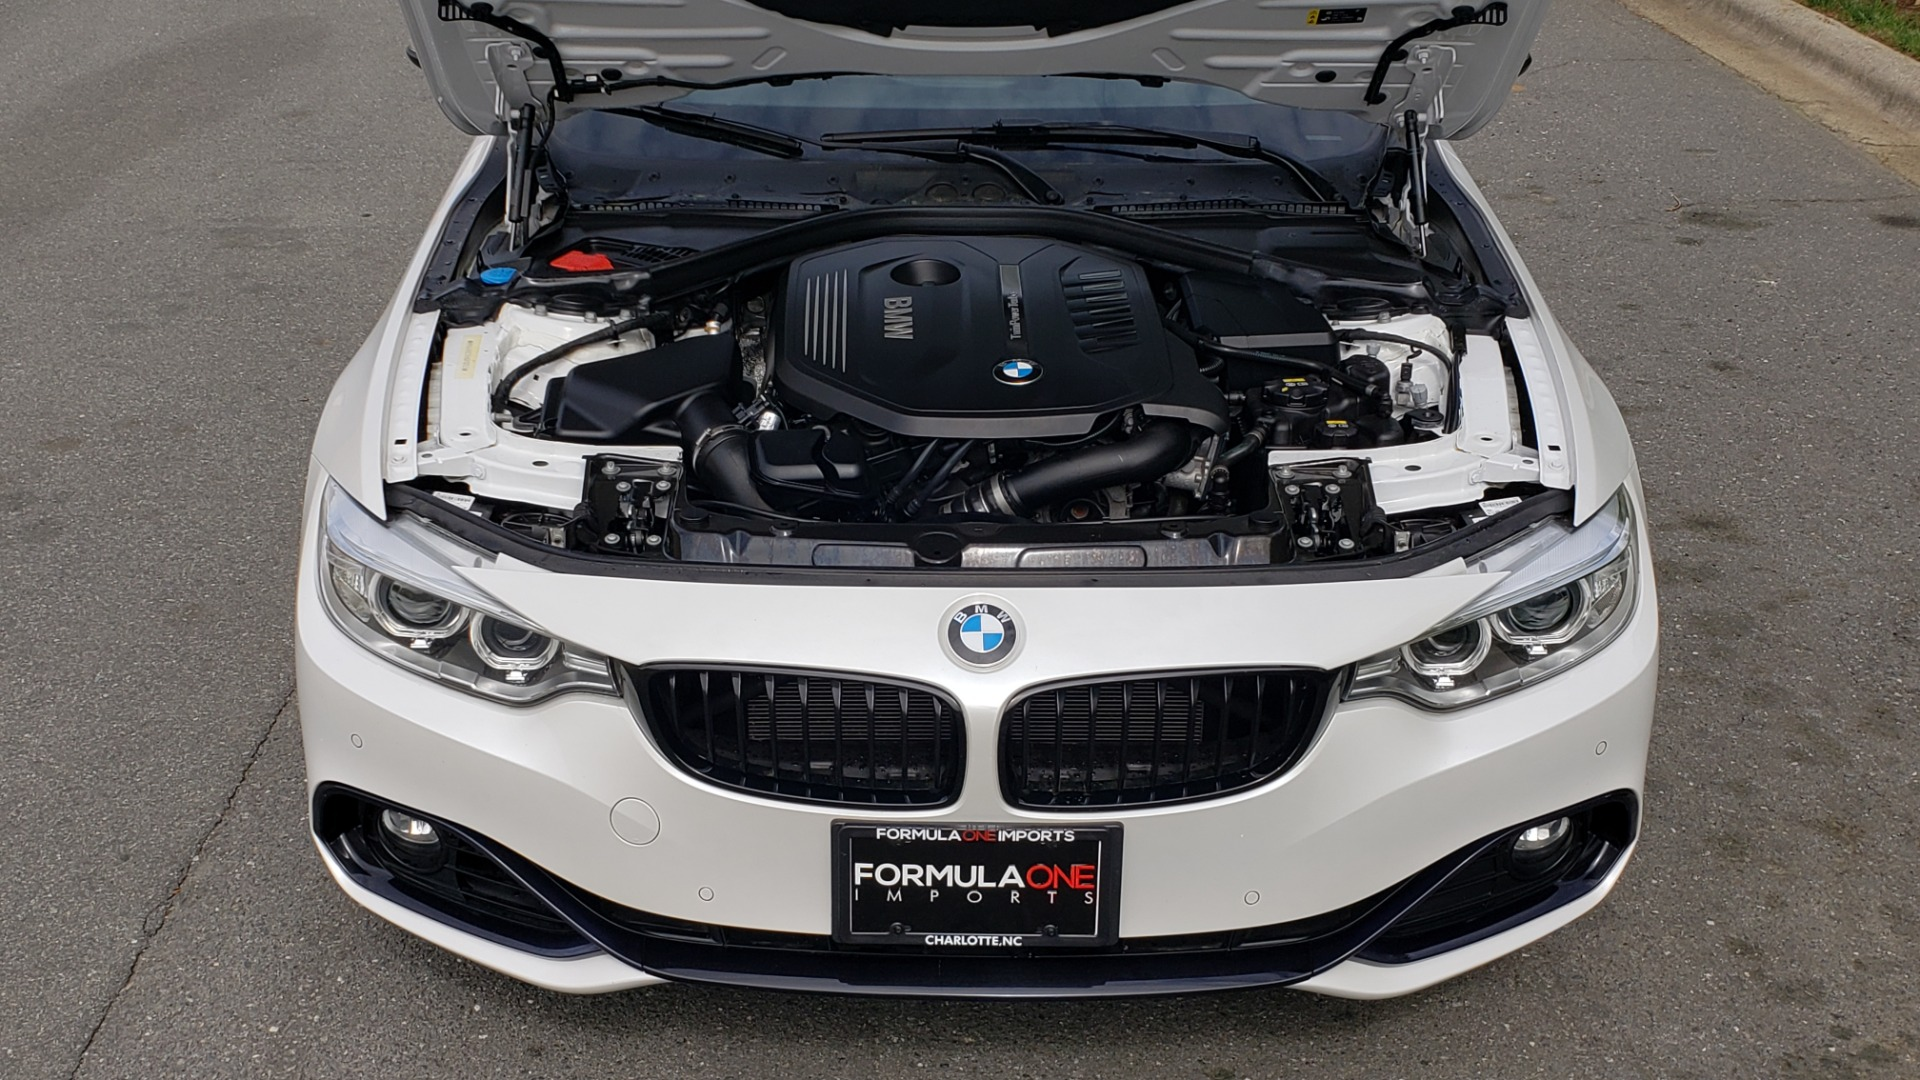 Used 2017 BMW 4 SERIES 440I XDRIVE / NAV / TECH PKG / DRVR ASST / SNRF / REARVIEW for sale Sold at Formula Imports in Charlotte NC 28227 18